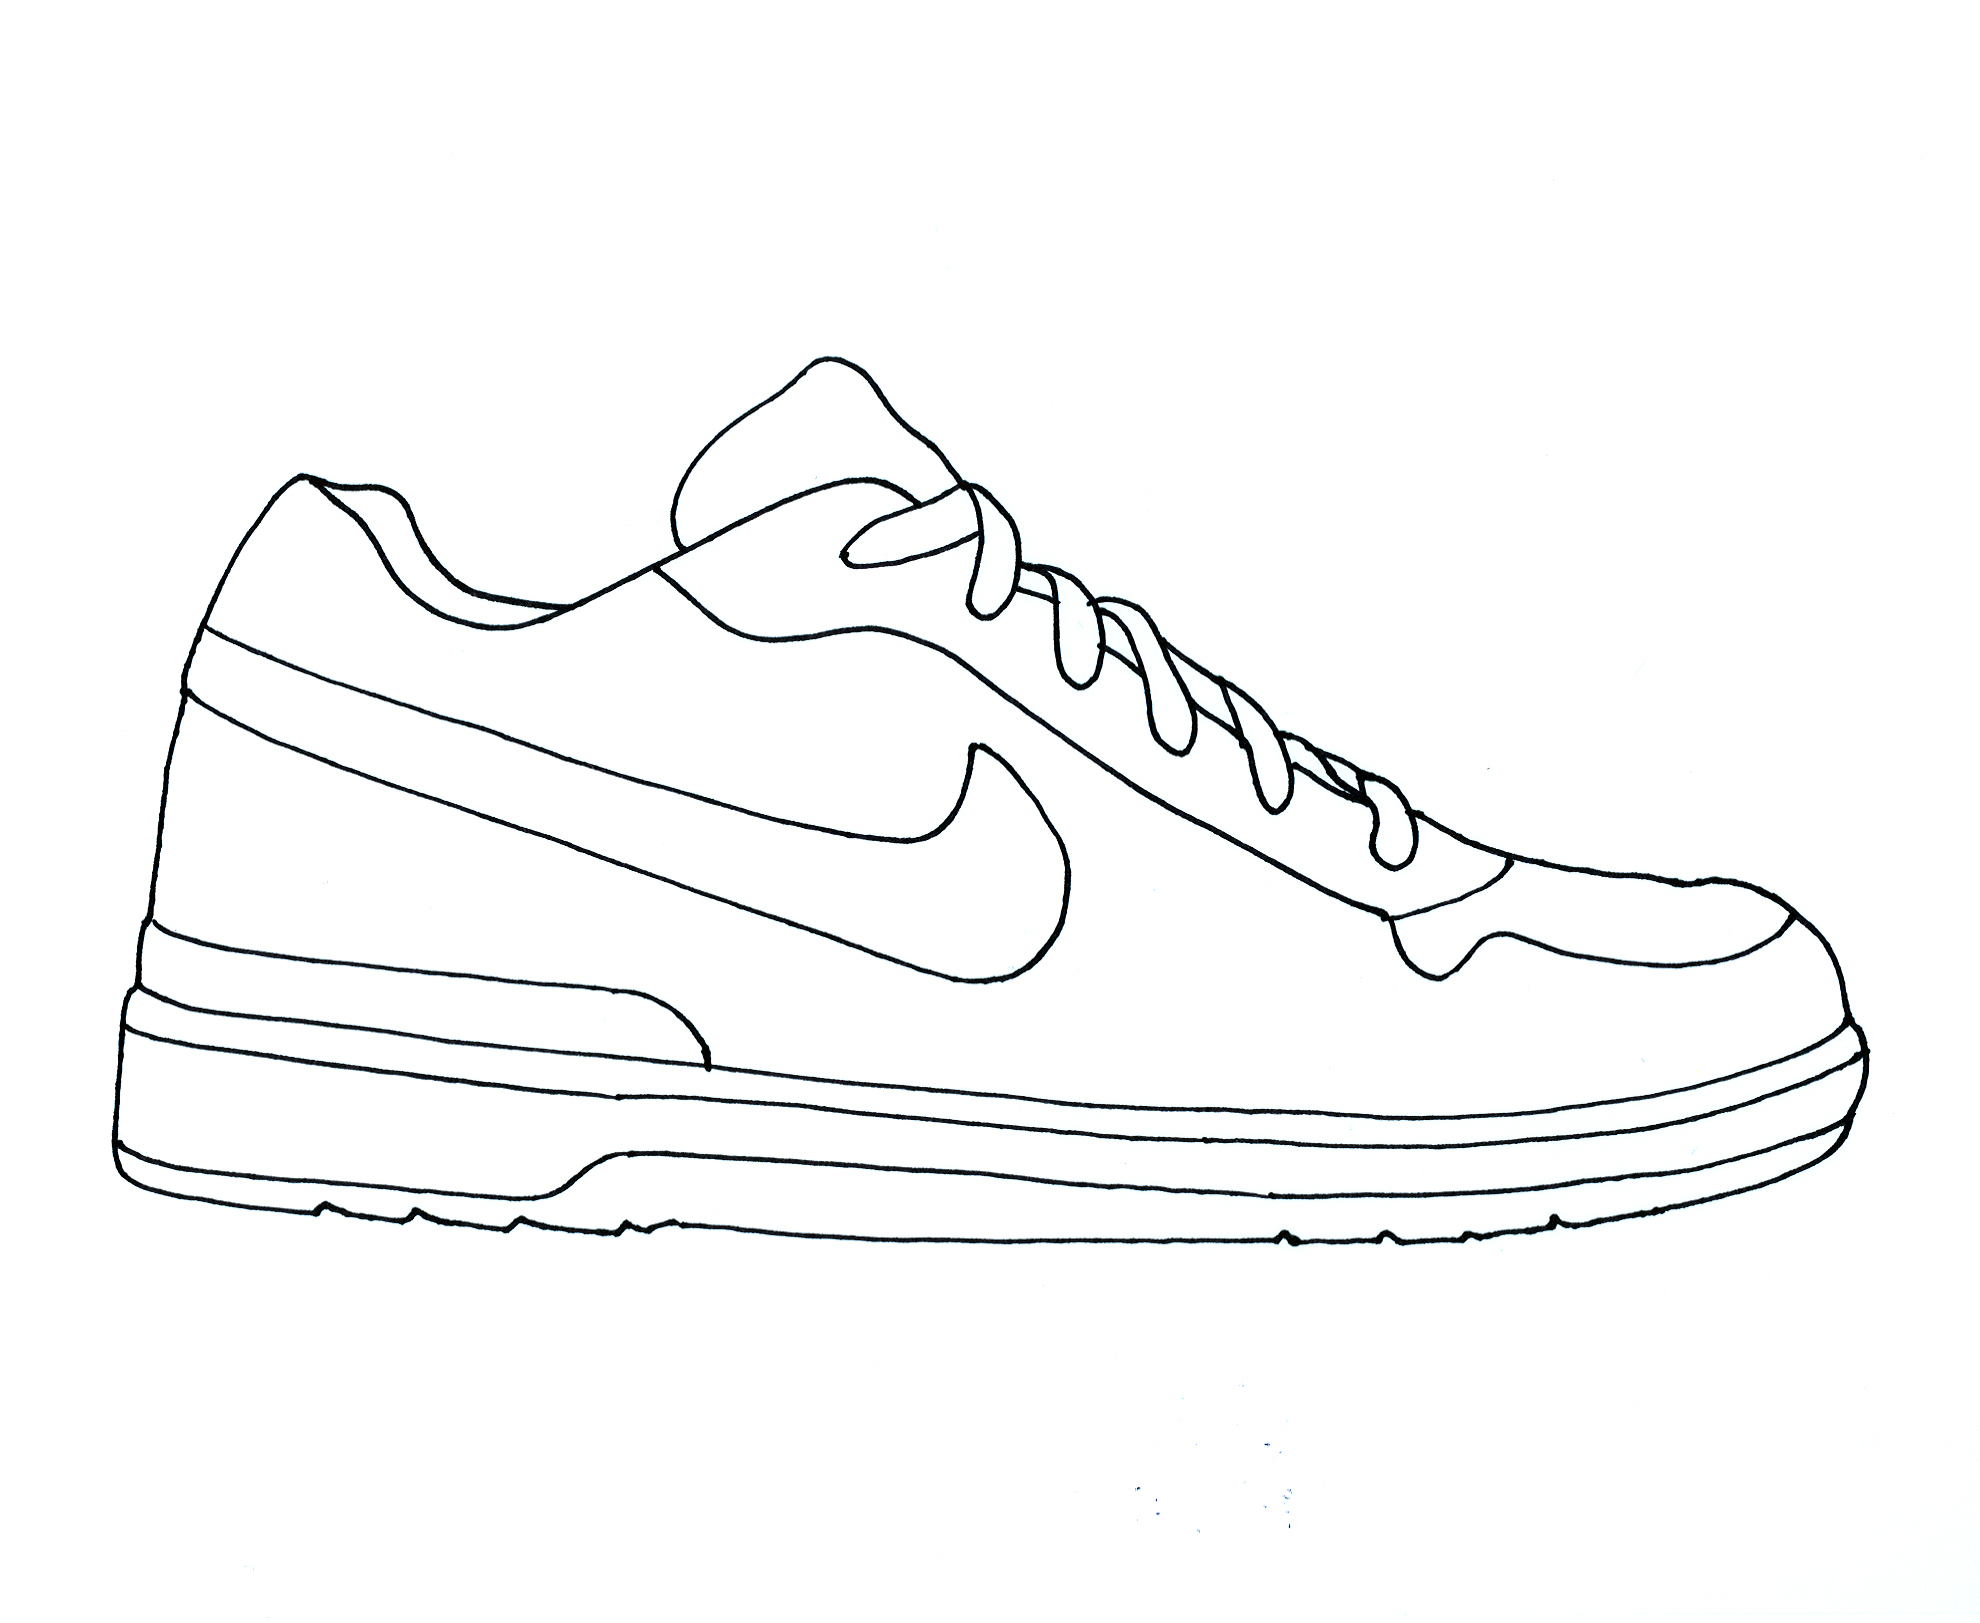 Drawn shoe #1